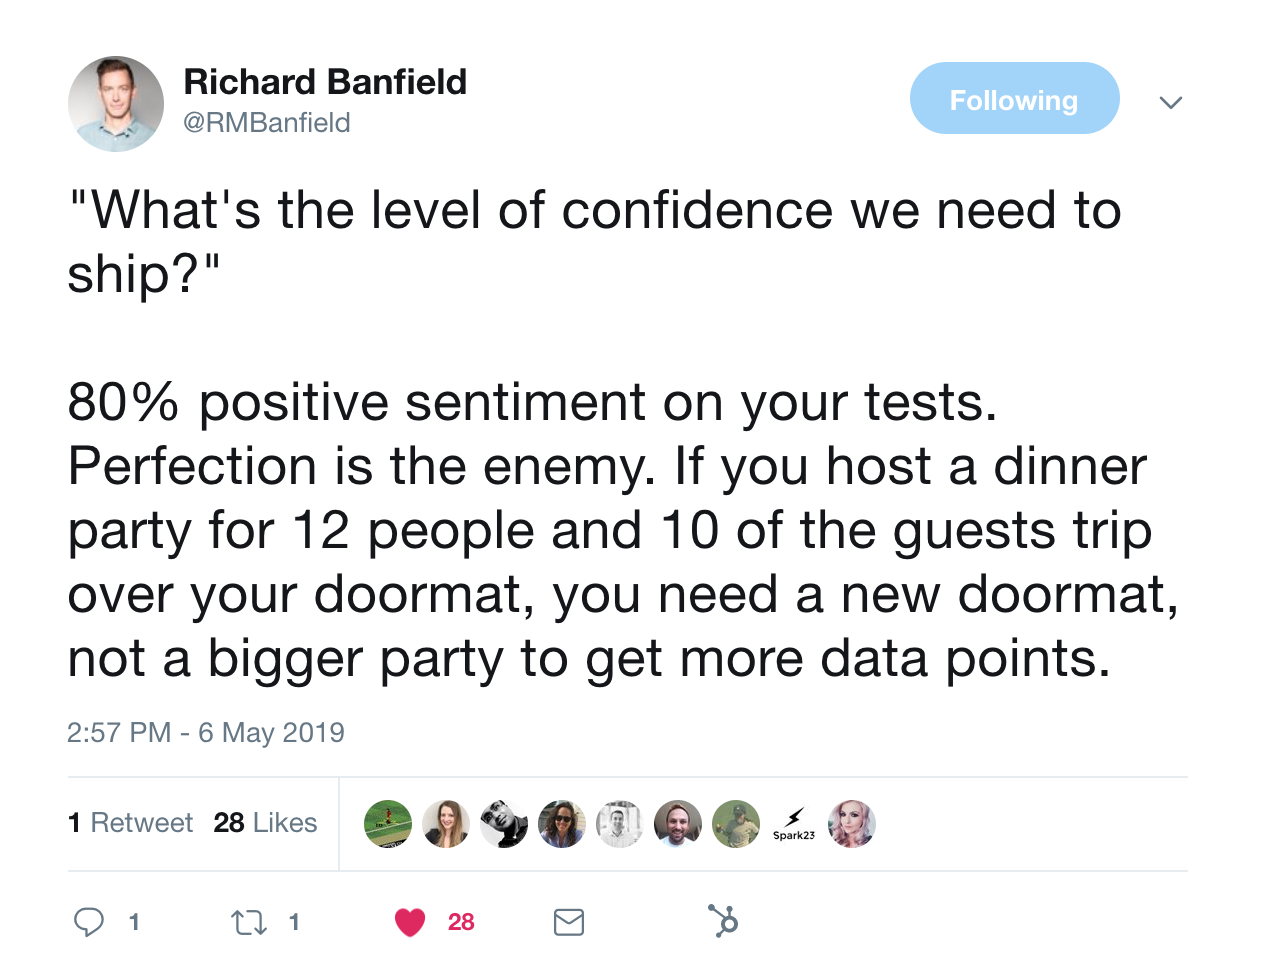 this is a tweet from richard banfield that answers the question: what is the level of confidence needed to ship a product? How polished does a product have to be before shipping?